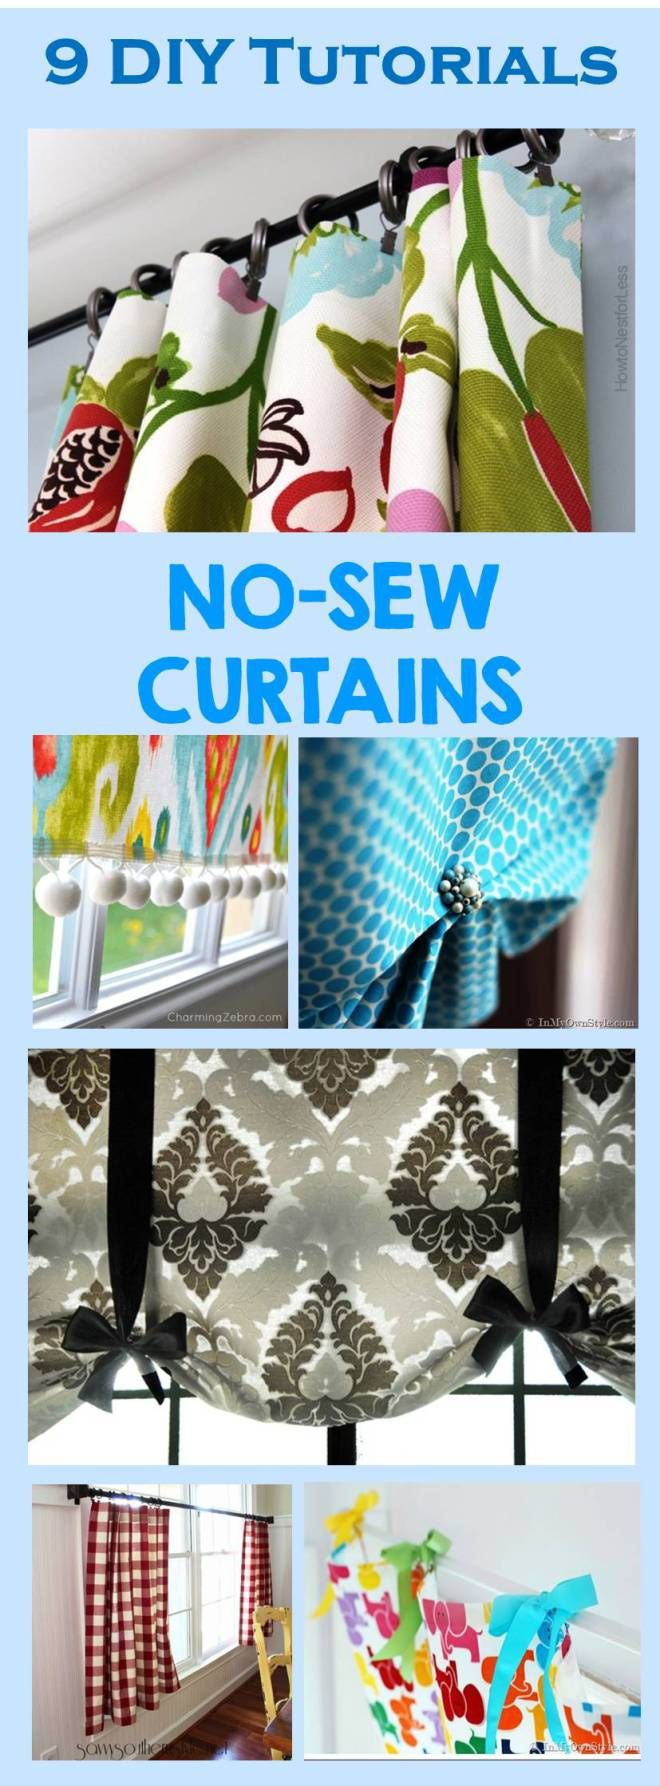 So i decided to make the curtains well semi home made - Best 10 Make Curtains Ideas On Pinterest Sewing Curtains How To Sew Curtains And How To Make Curtains